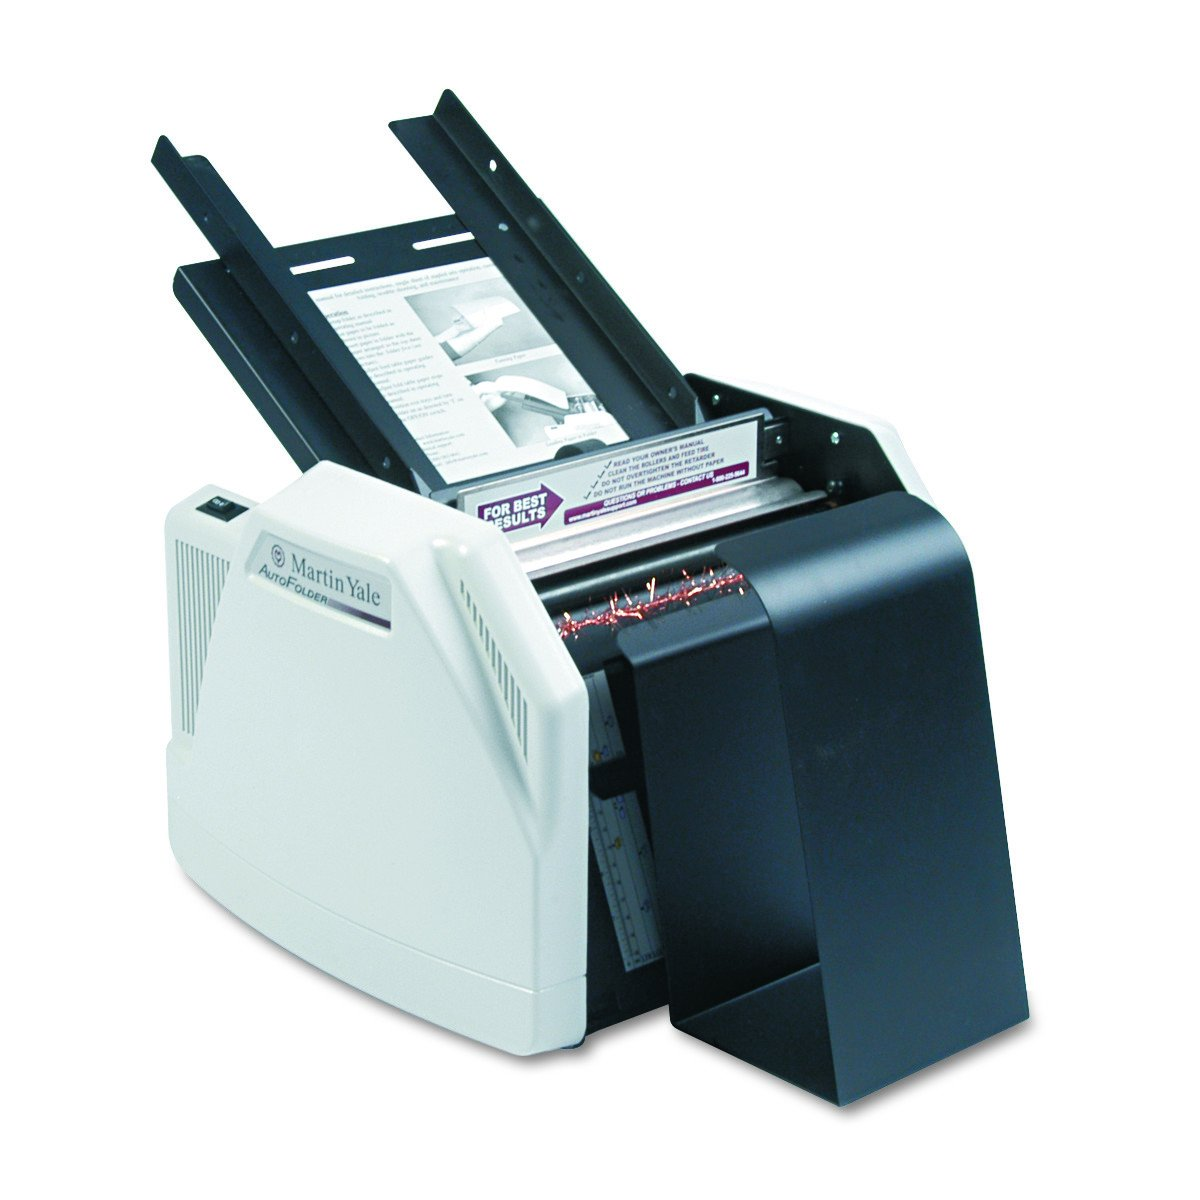 Martin Yale 1501X Automatic Paper Folder, Operates at a Speed of up to 7,500 Sheets per Hour, 150 Sheets Feed Table capacity, Up to 3 Sheets Manual Paper Feed